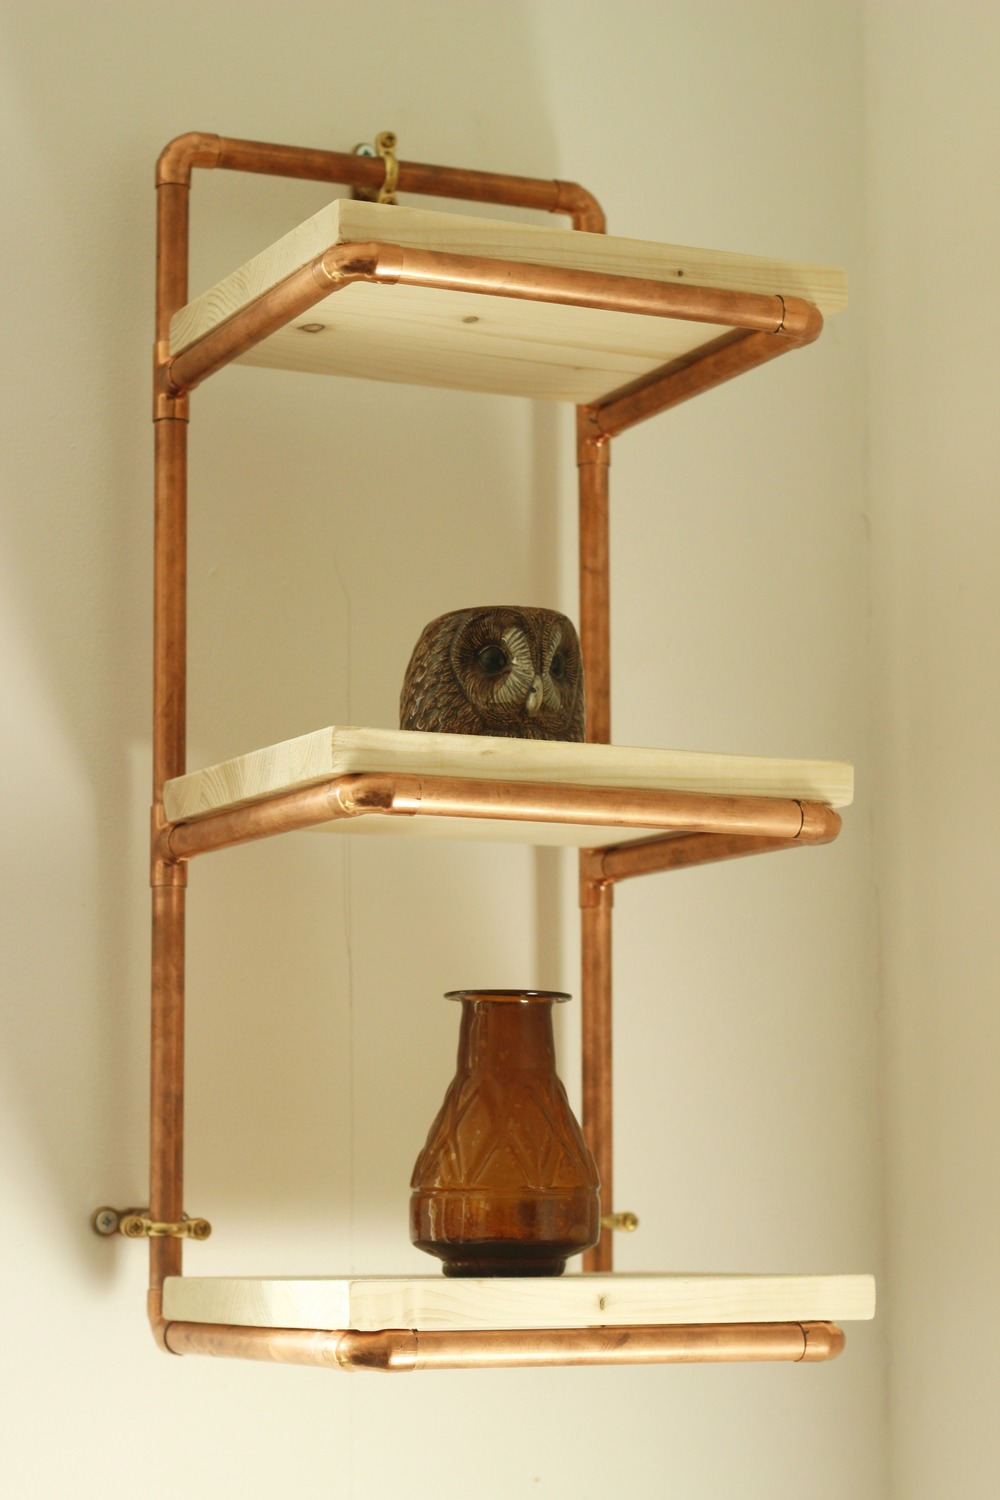 copper shelves.jpg